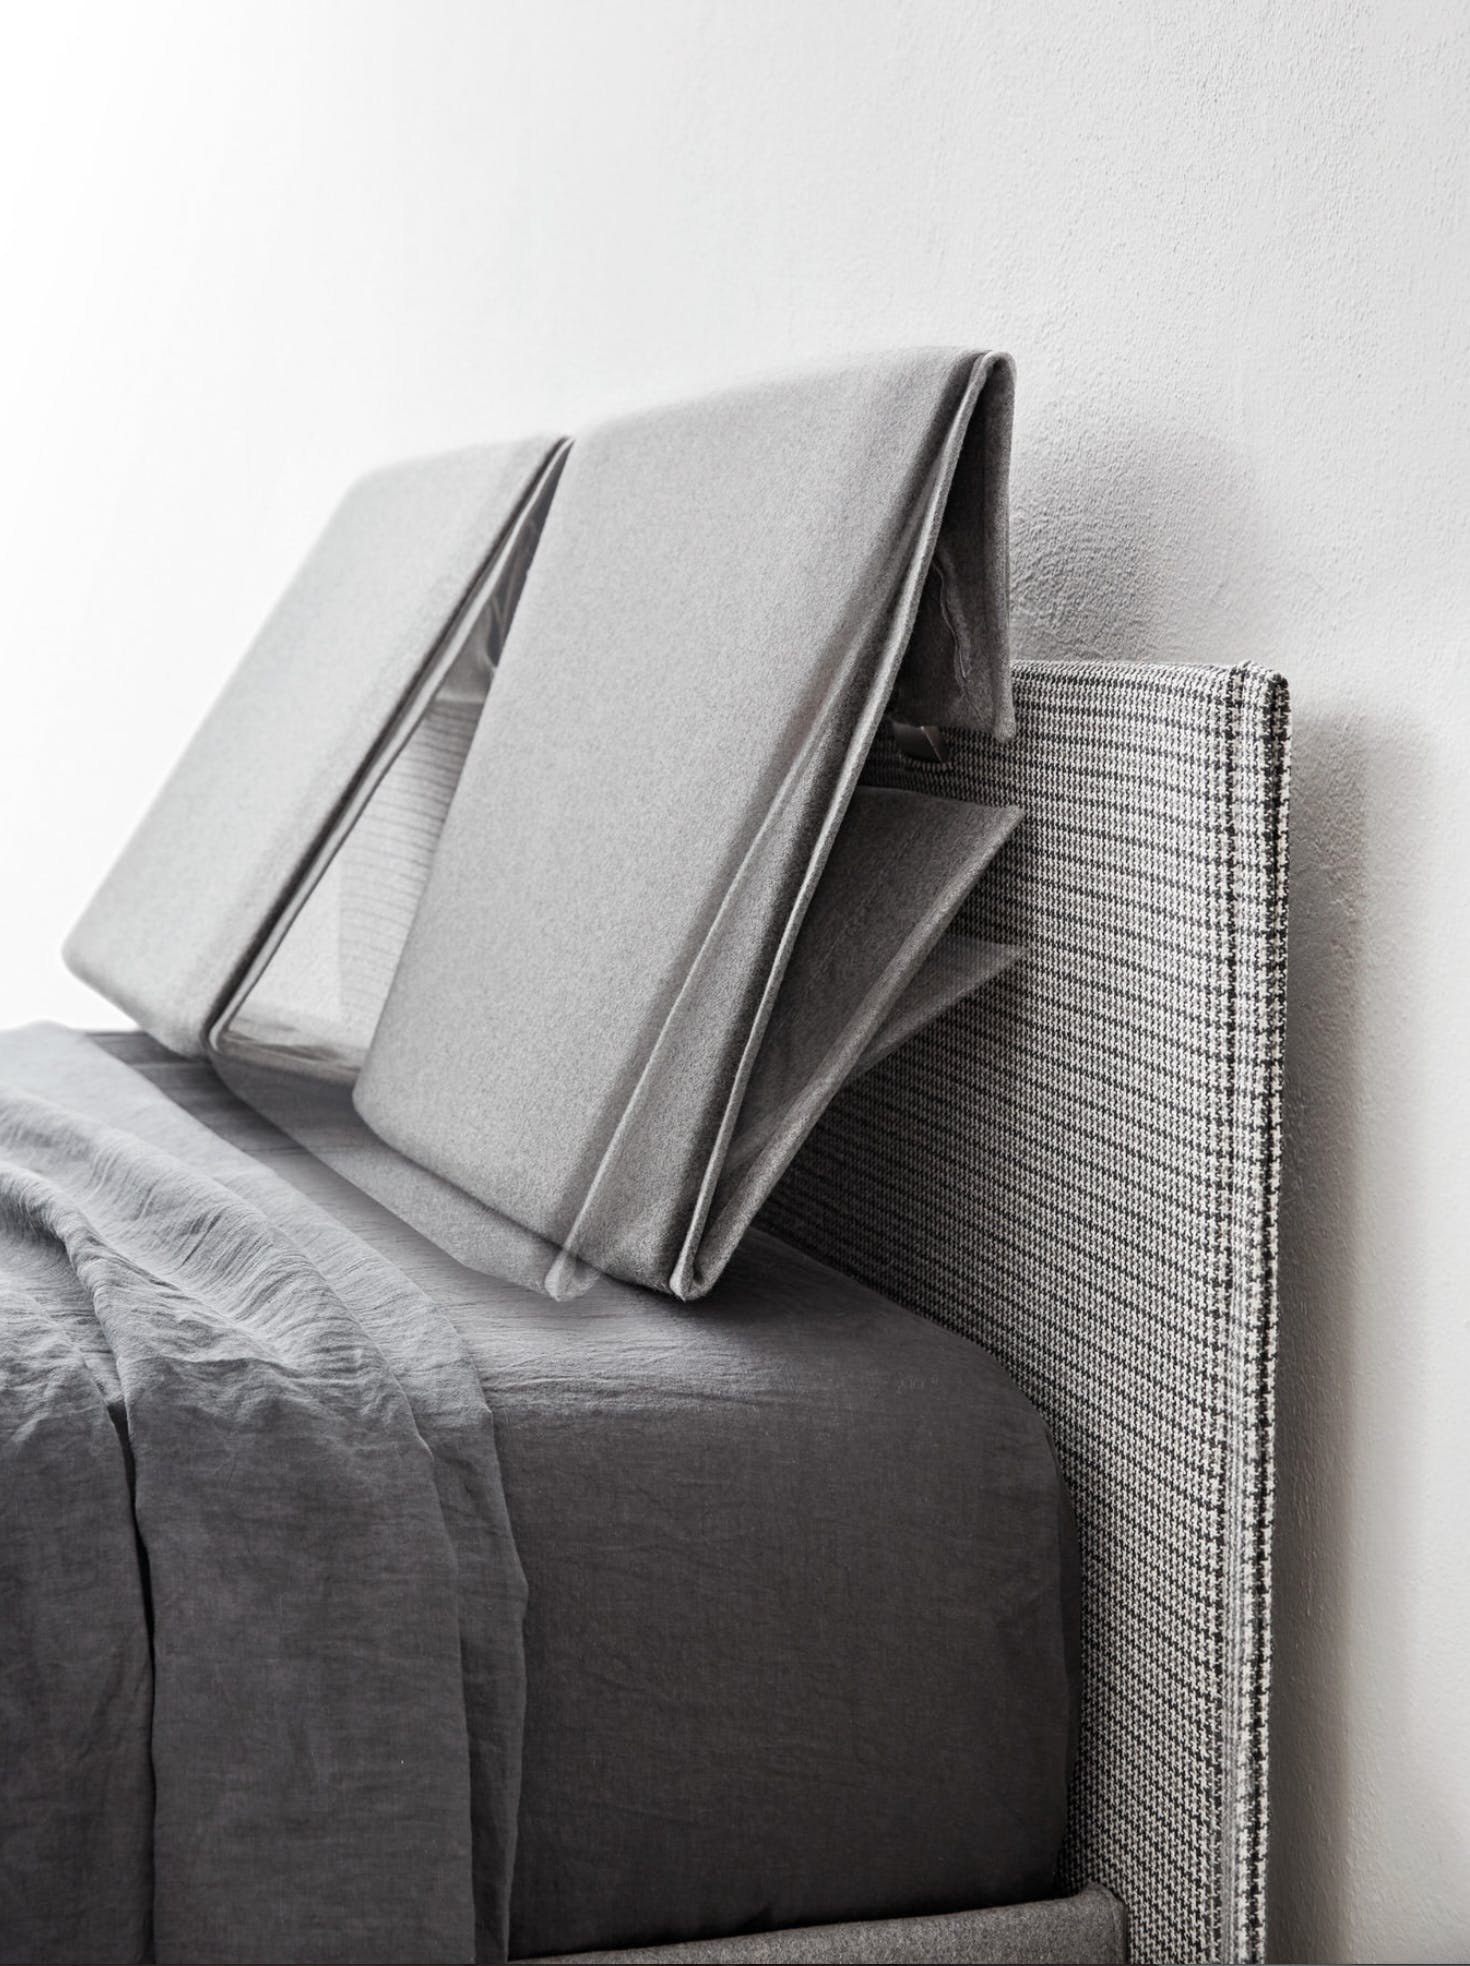 Caccaro Plie Bed Detail Haute Living